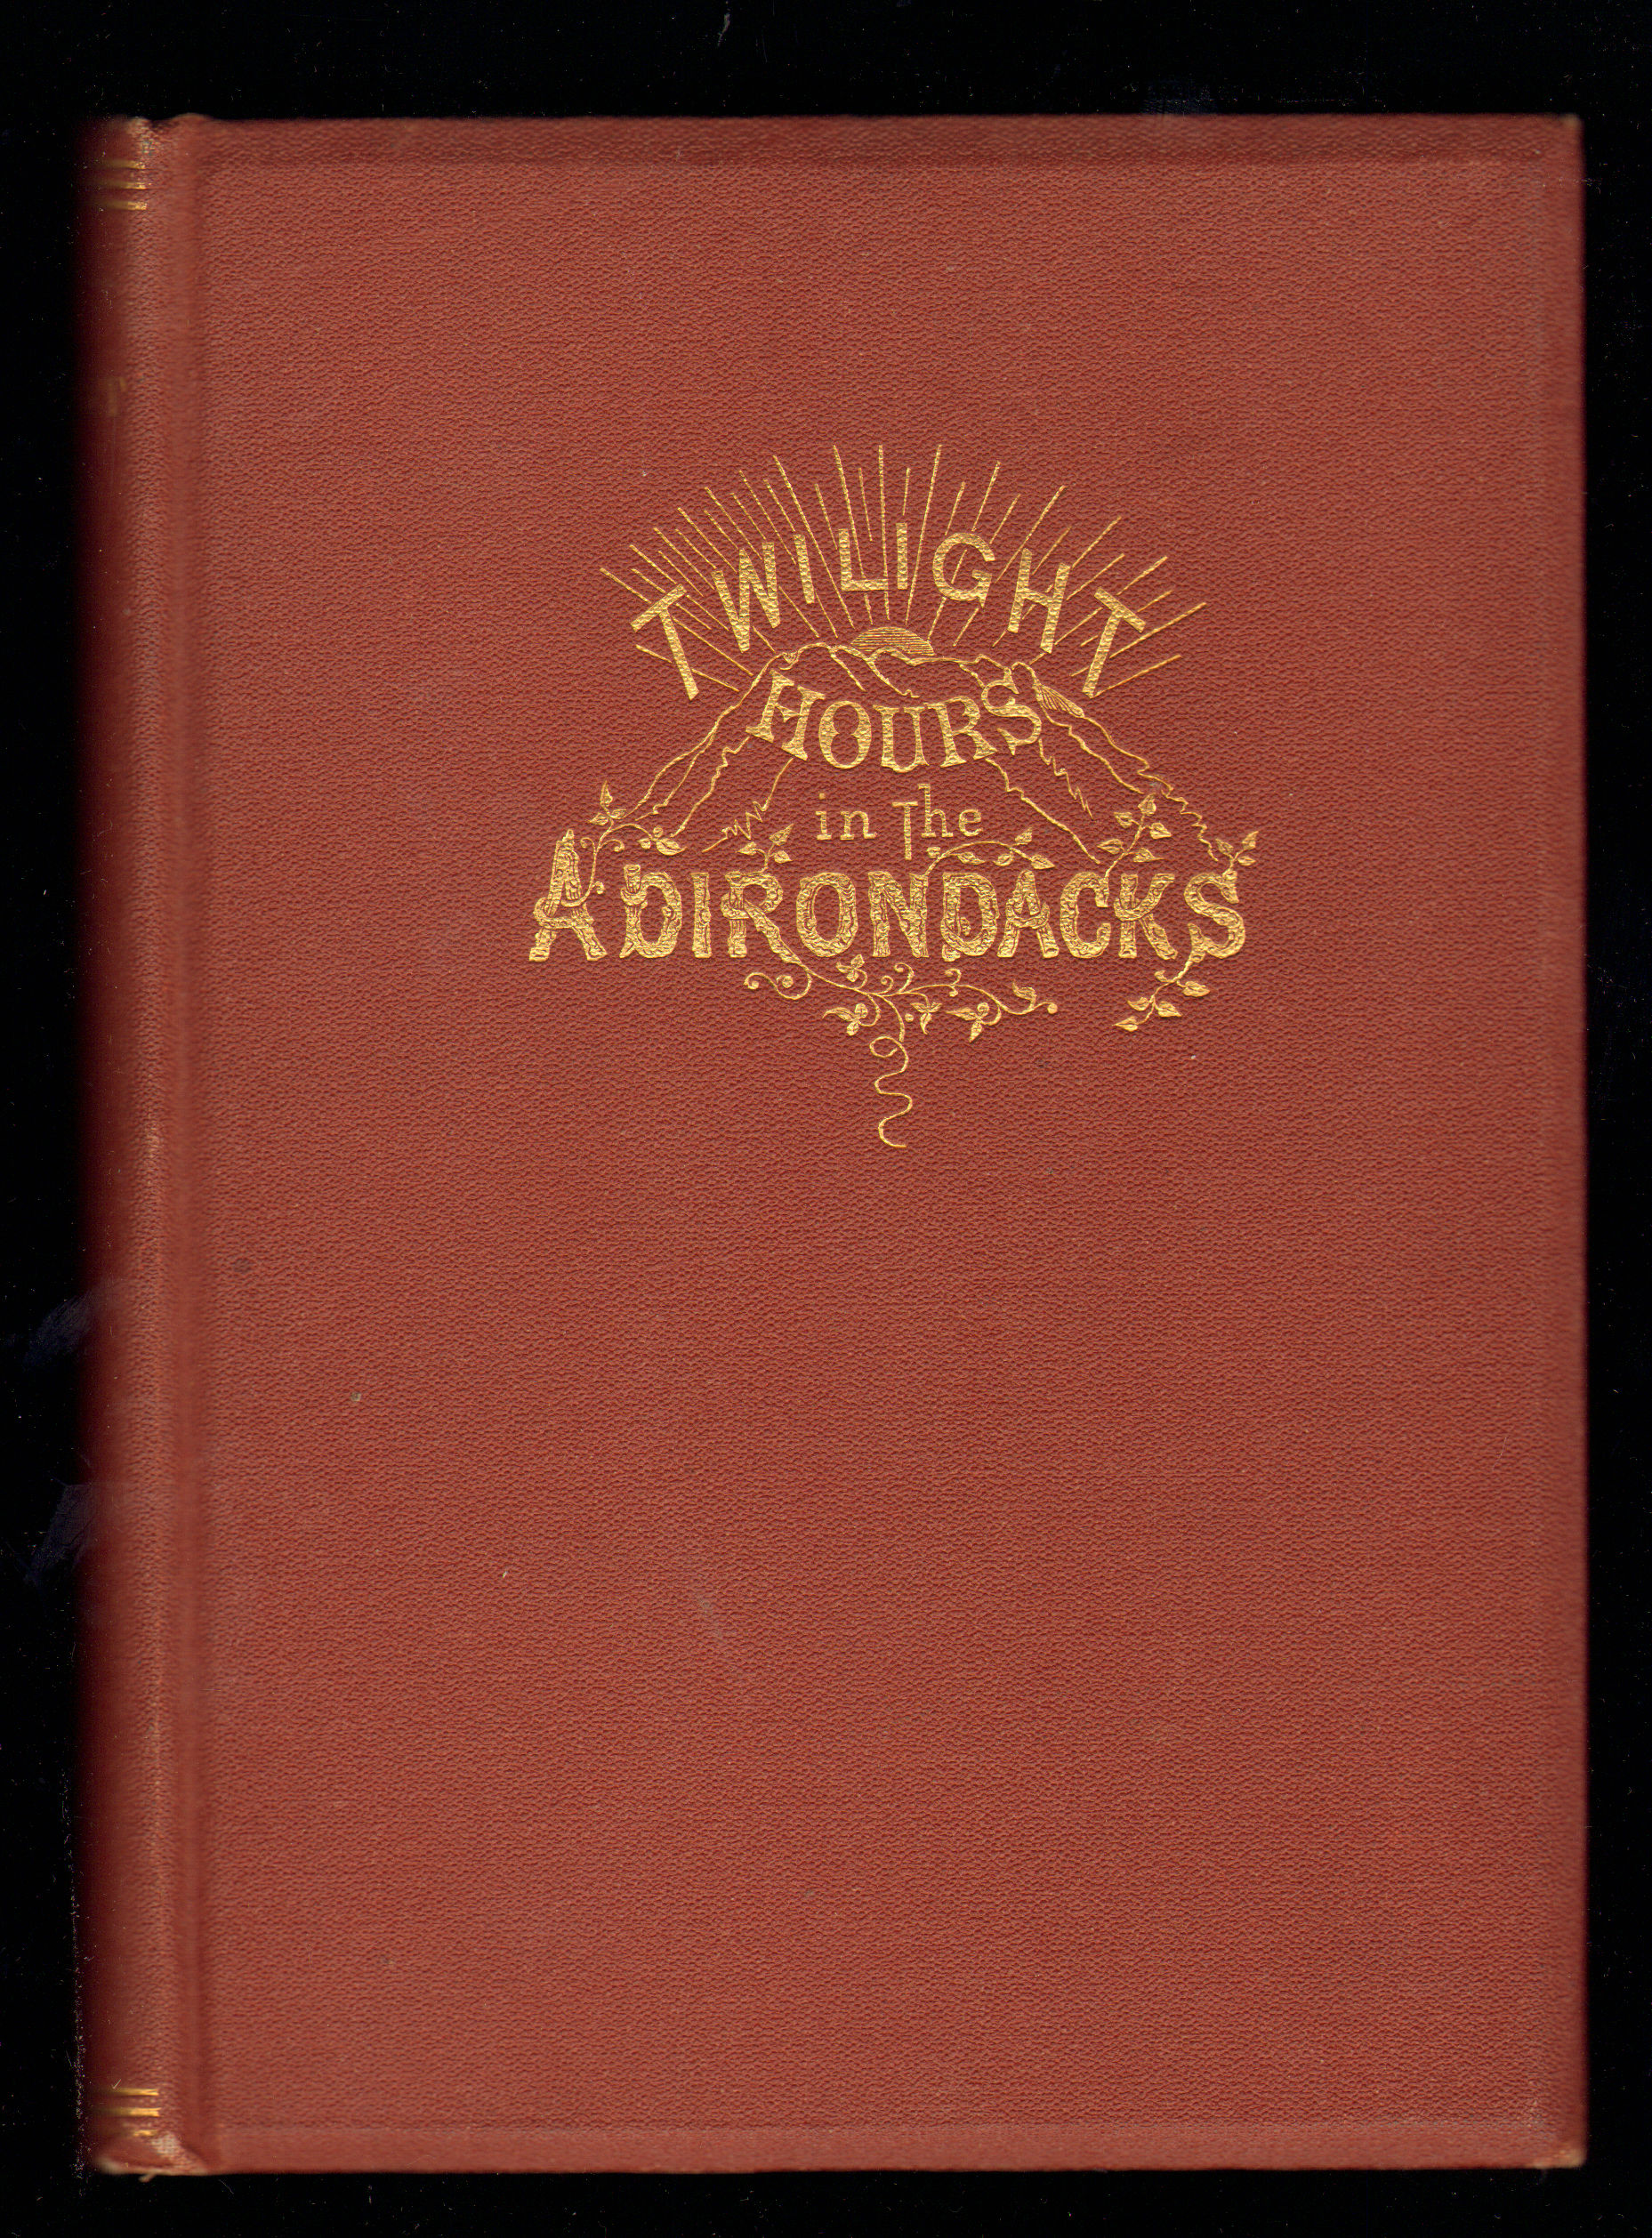 Image for Twilight Hours in the Adirondacks. The daily doings and several sayings of seven sober, social, scientific students in the Great Wilderness of Northern New York, variously versified in seven thousand seven hundred and seventy seven lines.